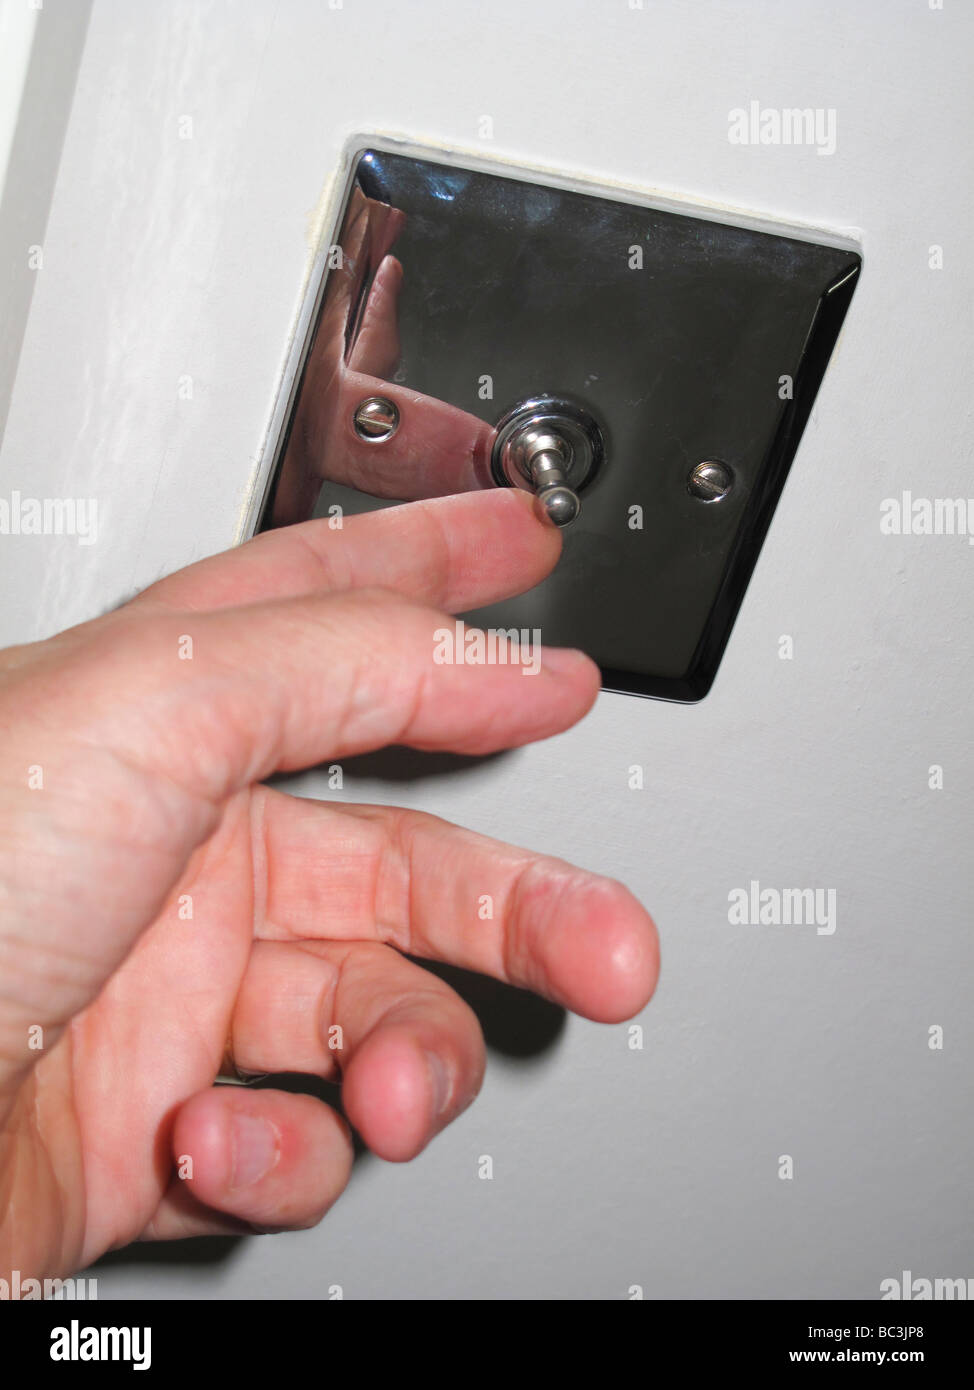 Male hand switching light switch - Stock Image